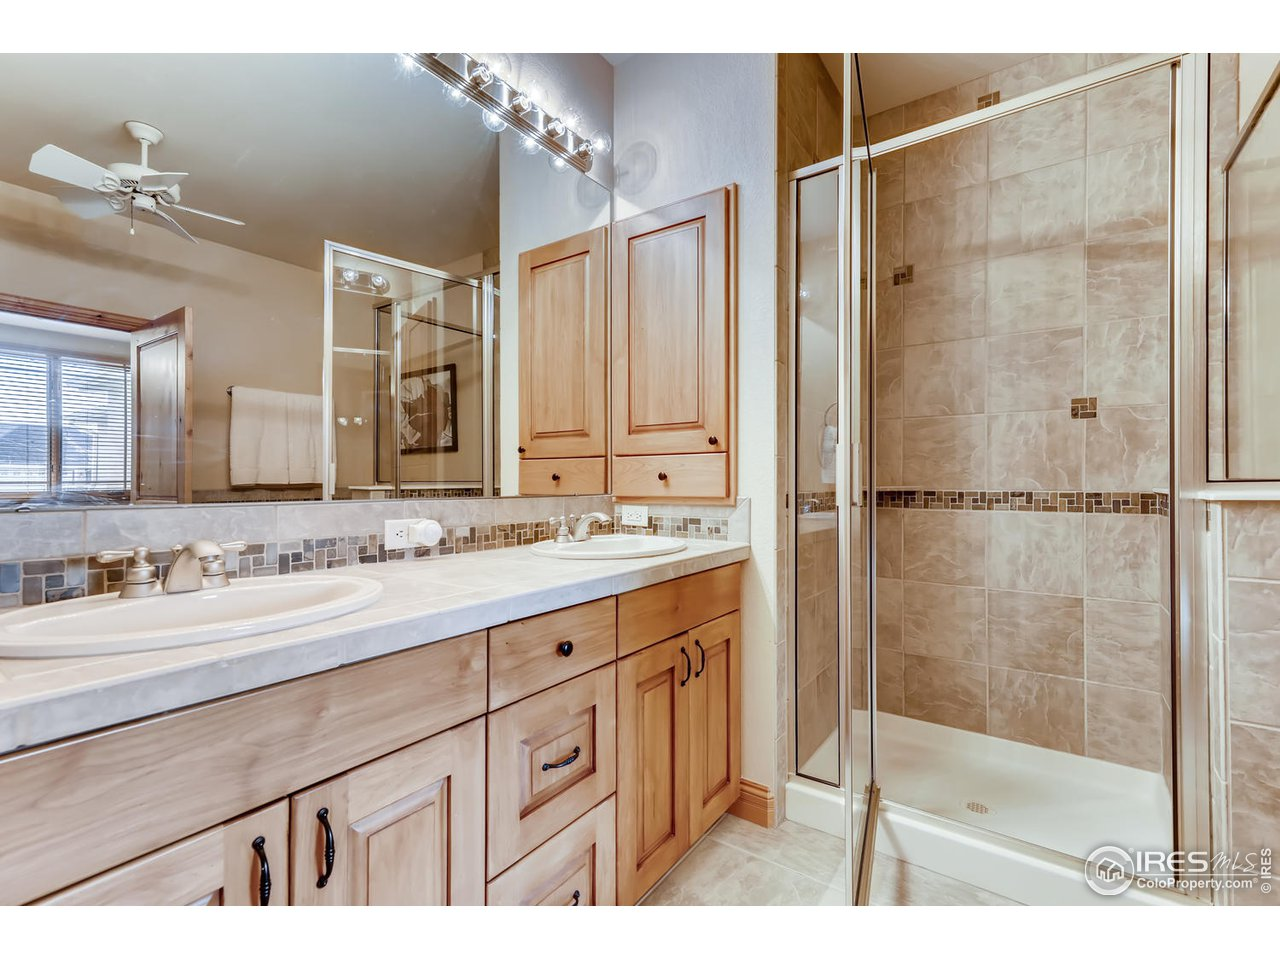 Master Bathroom - Shower & Soaking Tub